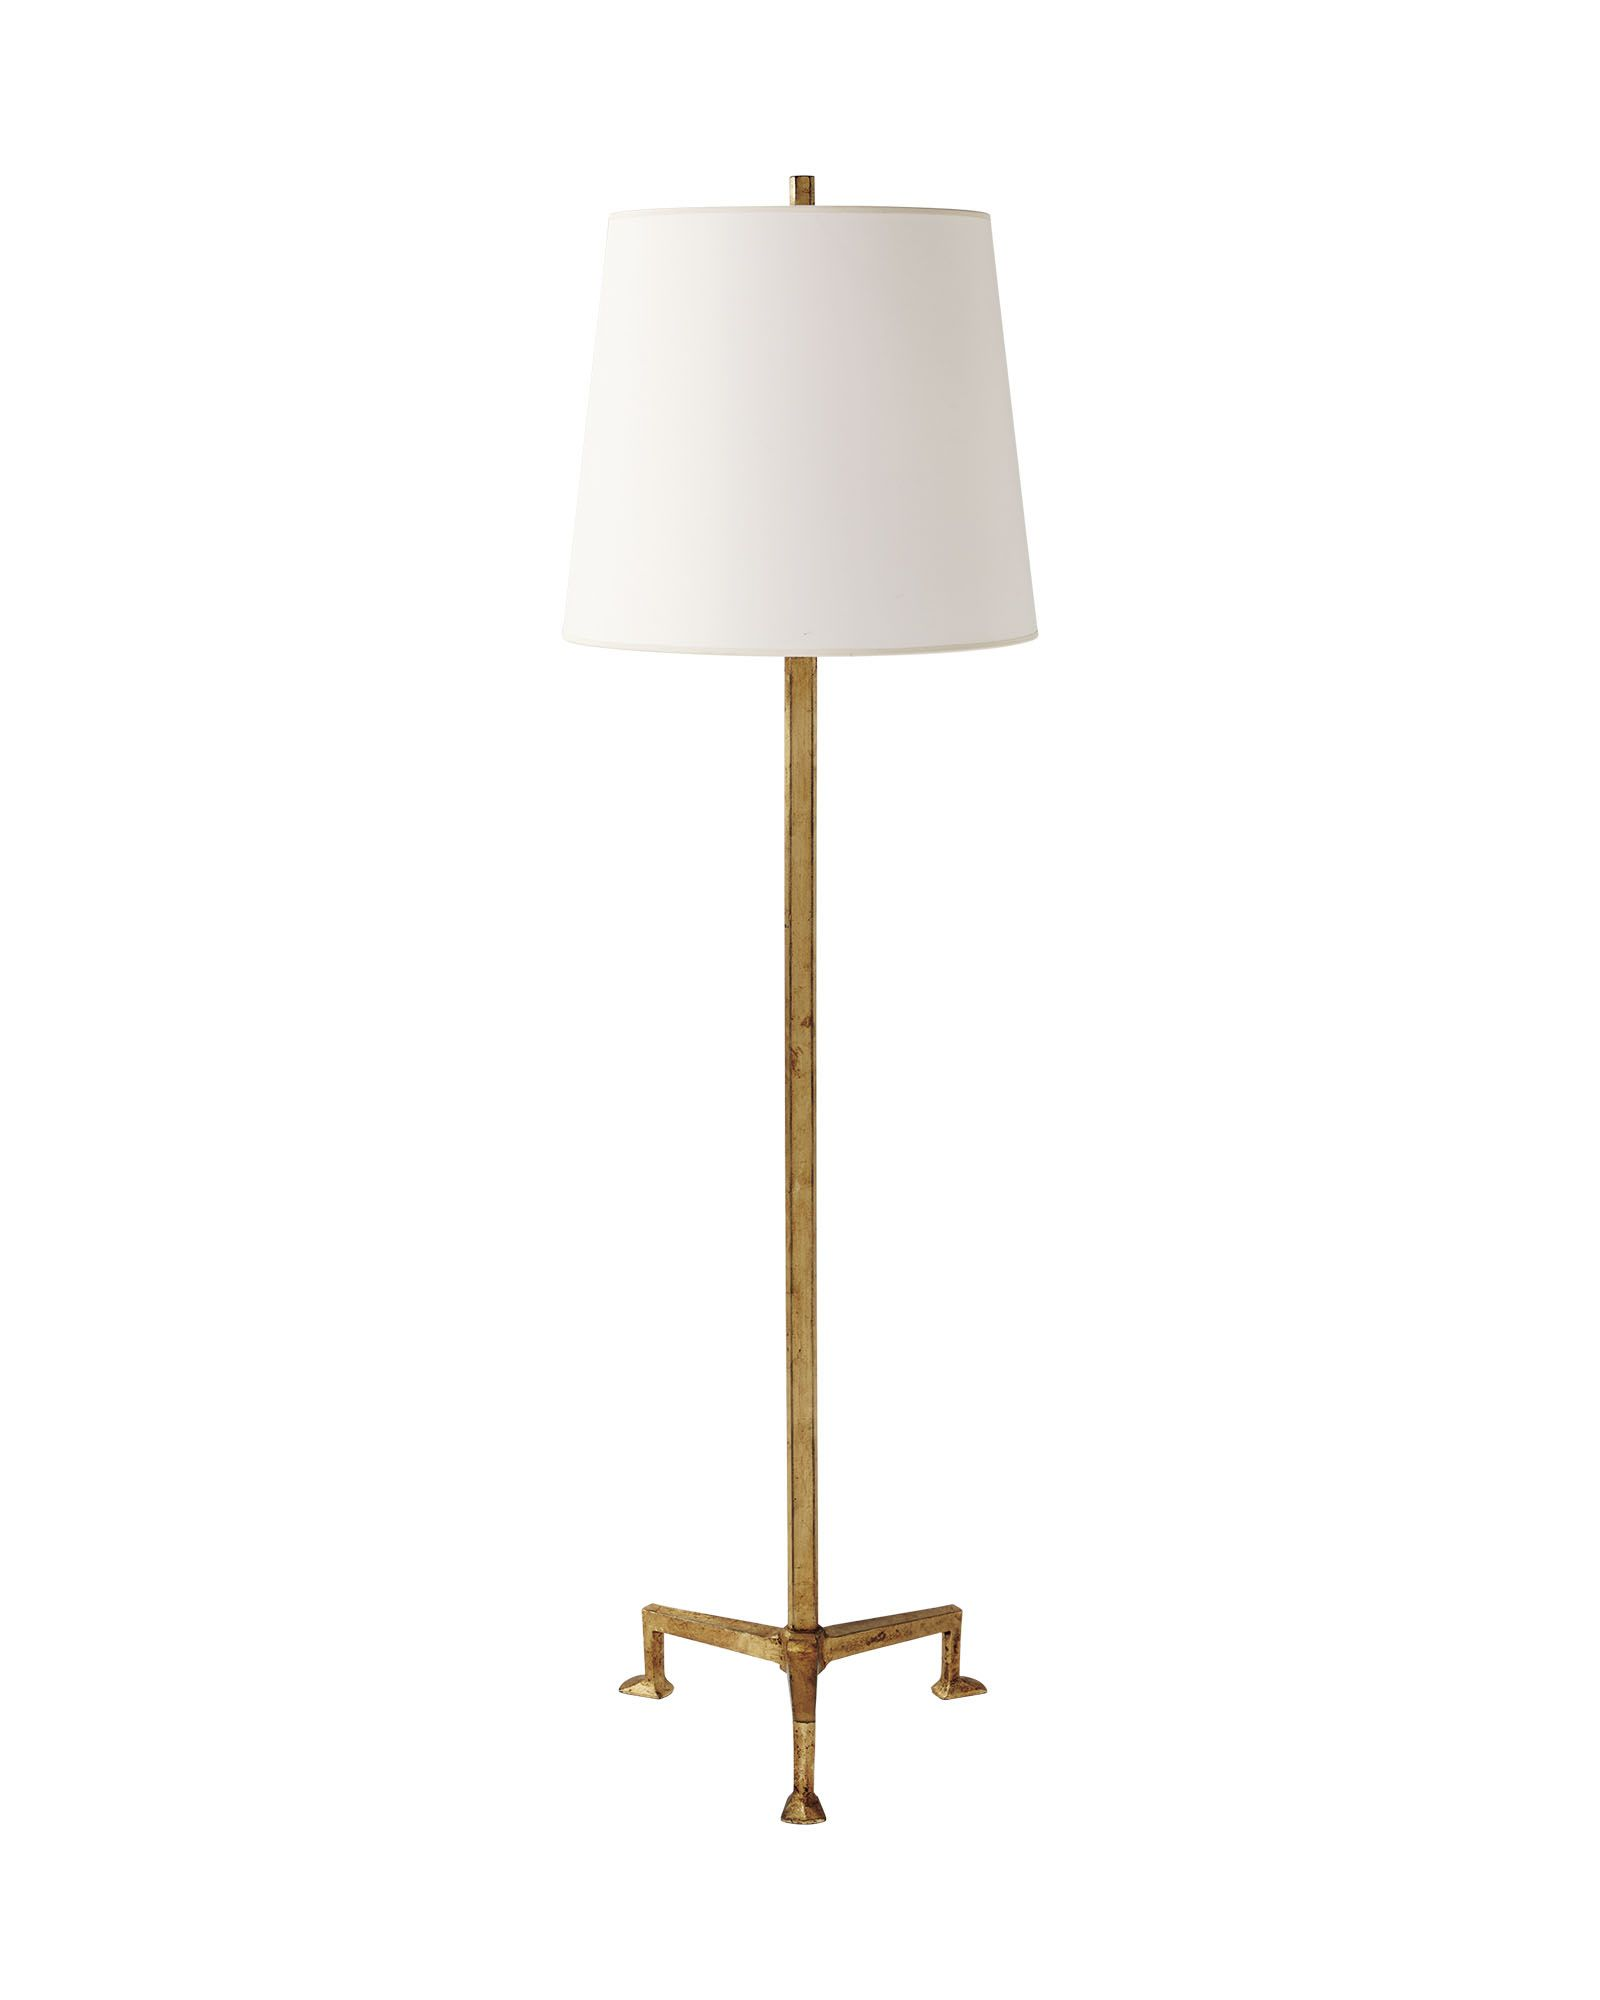 Harrington Floor Lamp | Floor lamp, Candleholders and Iron